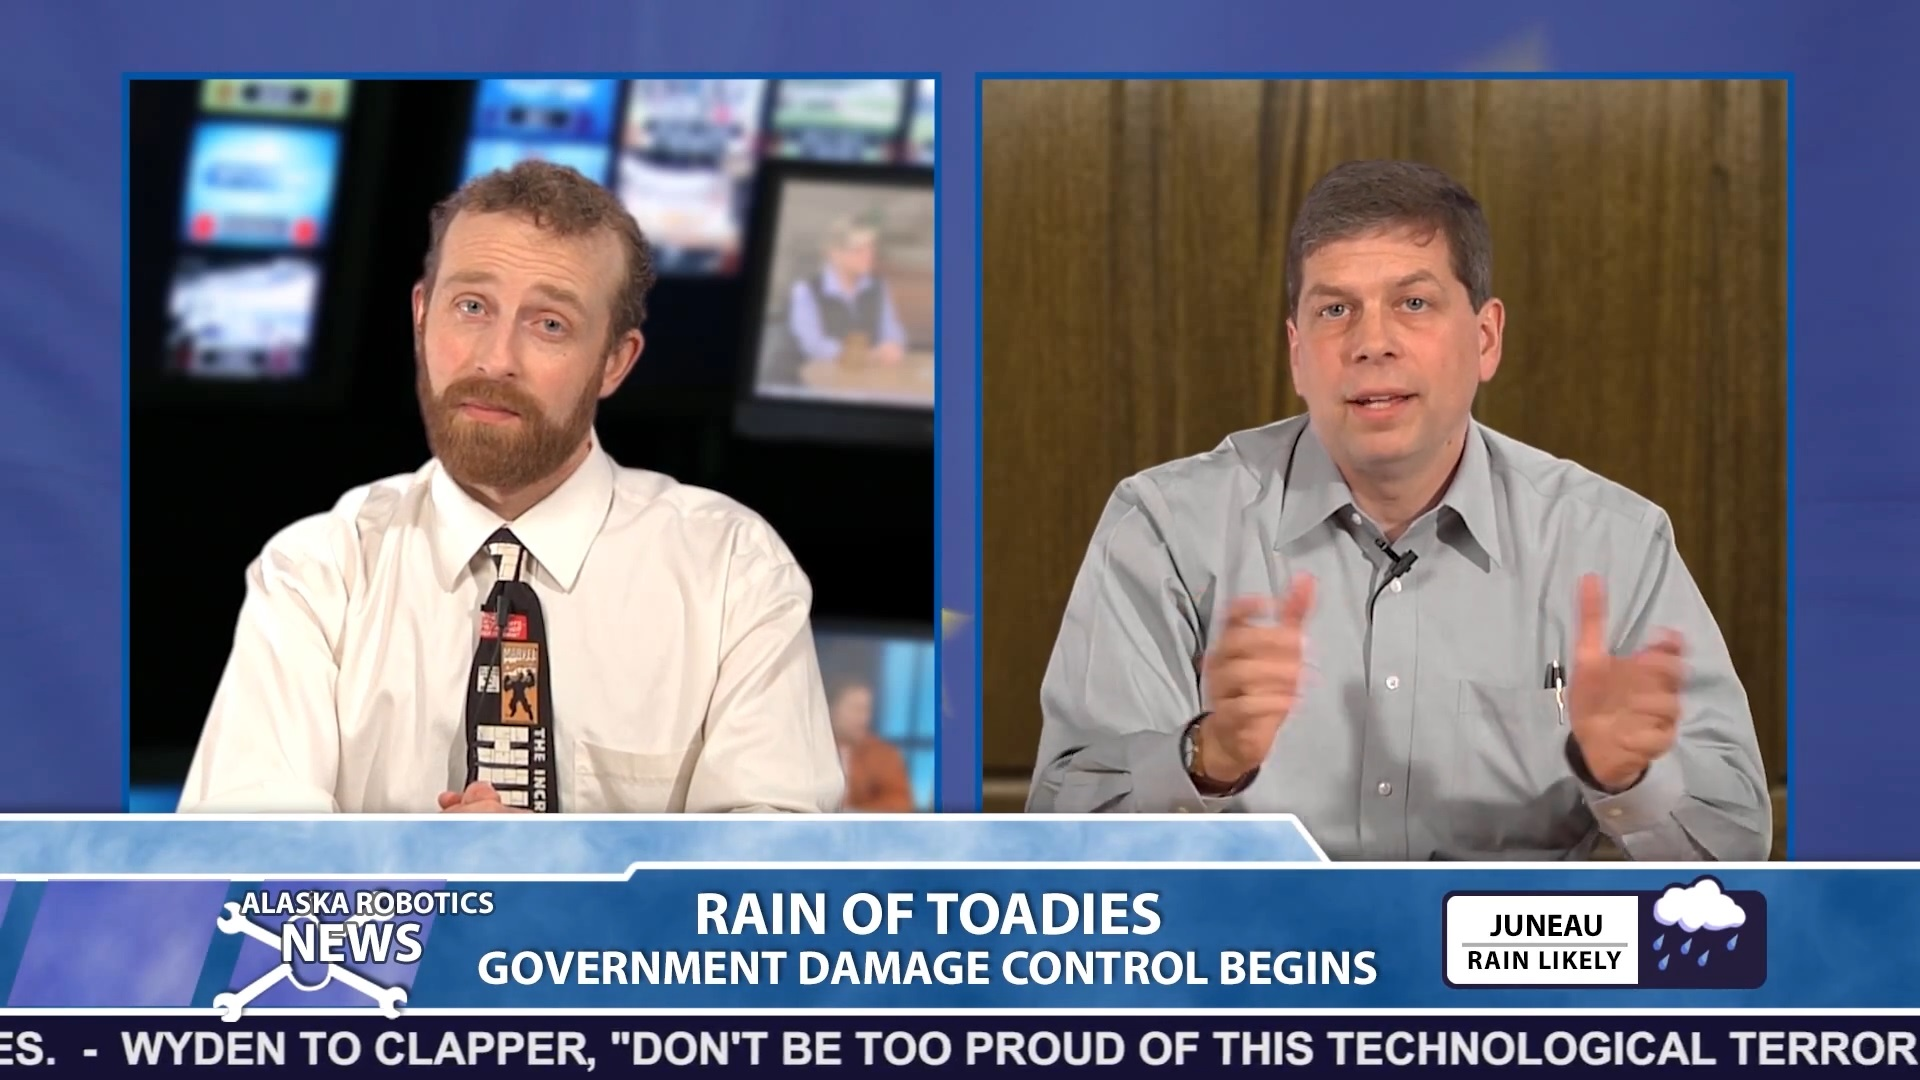 U.S. Sen. Mark Begich is Alaska Robotics' highest profile guest to appear on their satirical news show. (Screen capture courtesy Alaska Robotics)